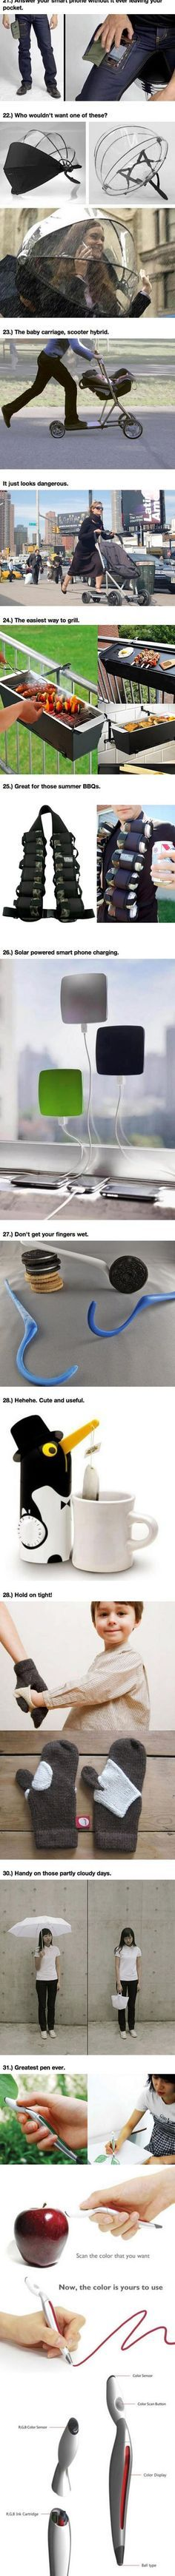 31 Incredible Inventions That May Change Your Life (21 - 31) #28 is so cute!